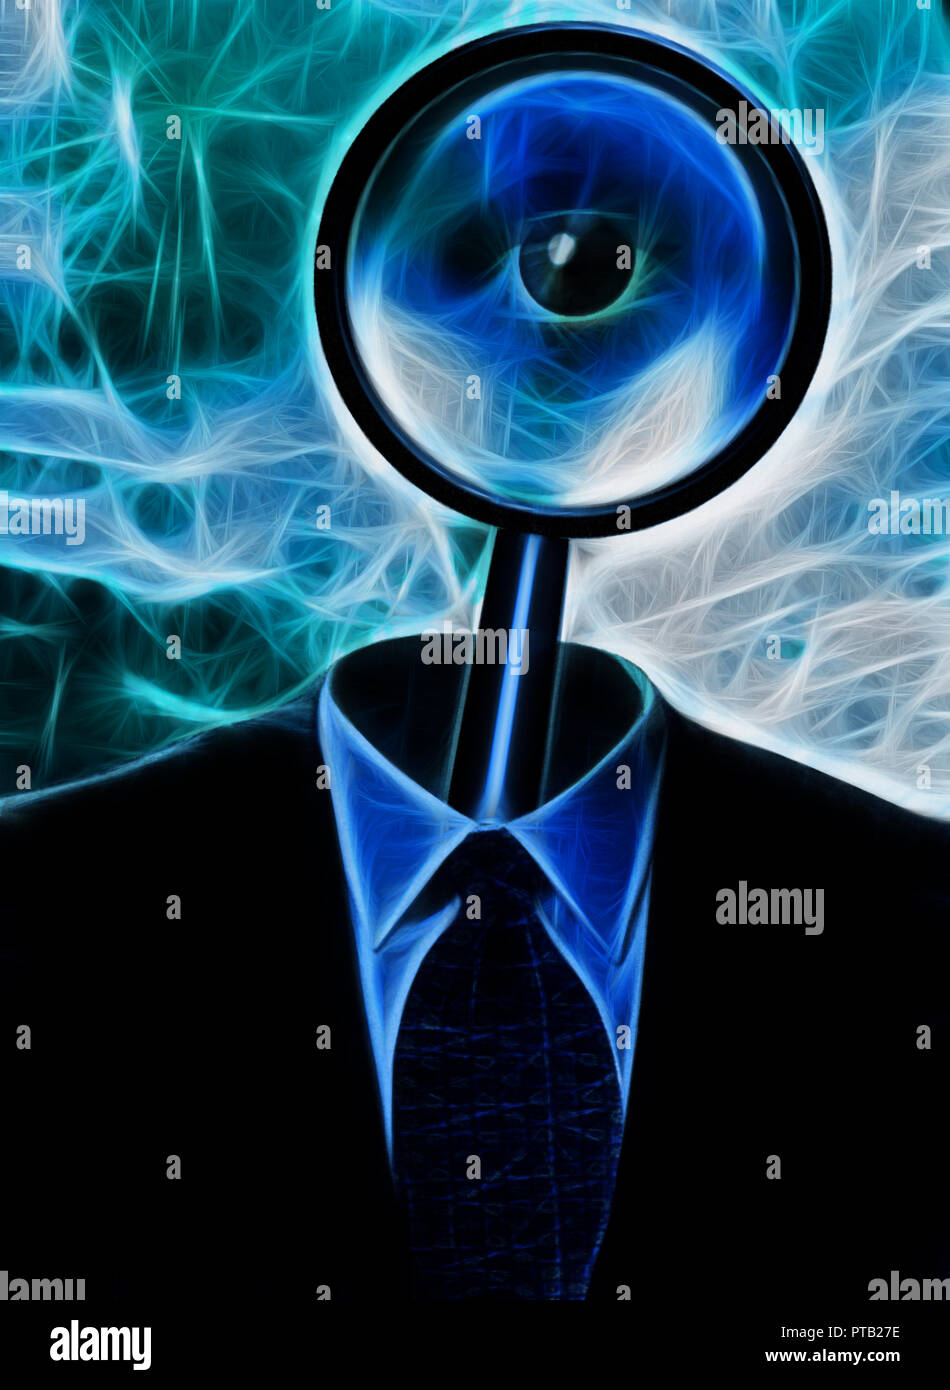 Magnify Mind. Surreal Composition - Stock Image